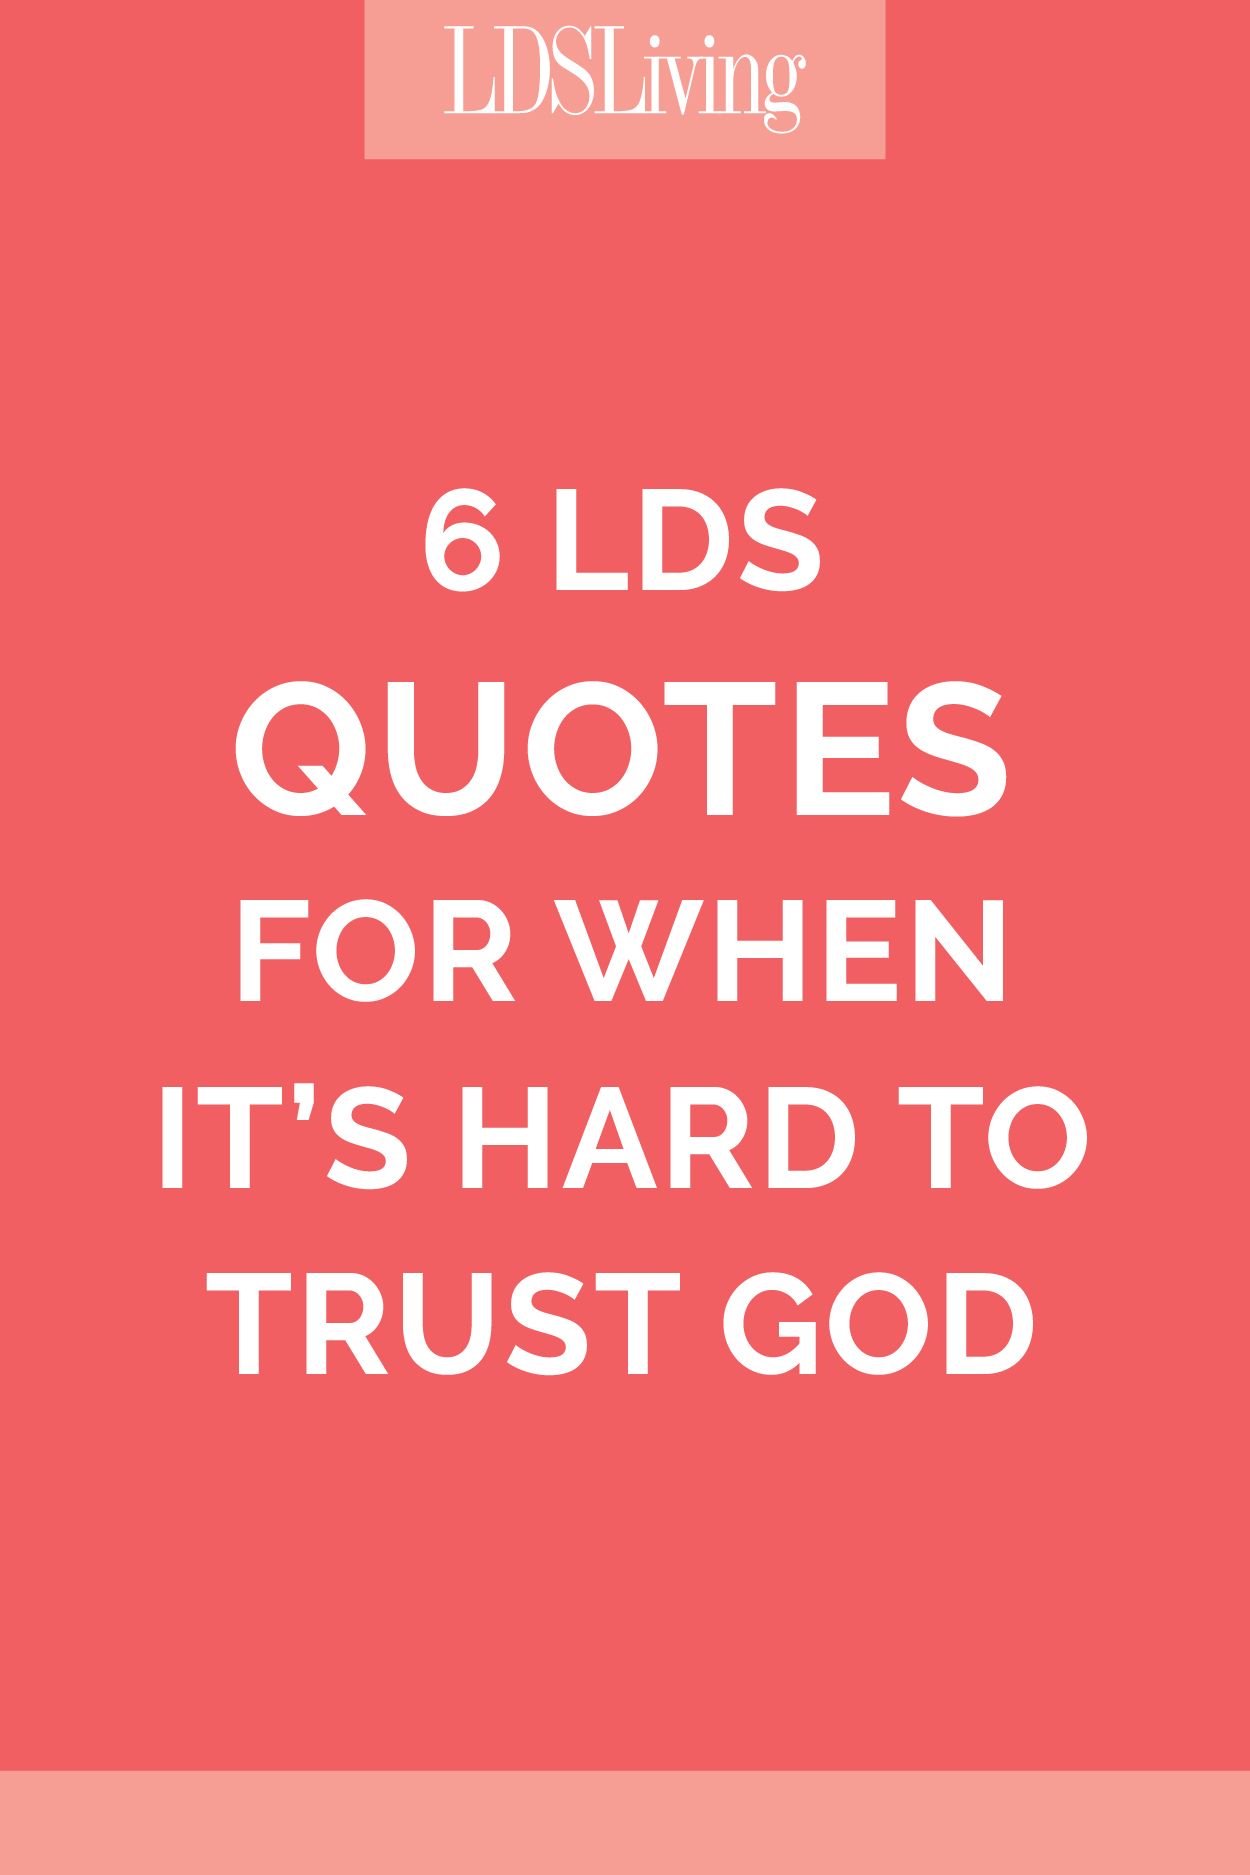 Quotes God 6 Lds Quotes For When It's Hard To Trust God  Lds Living